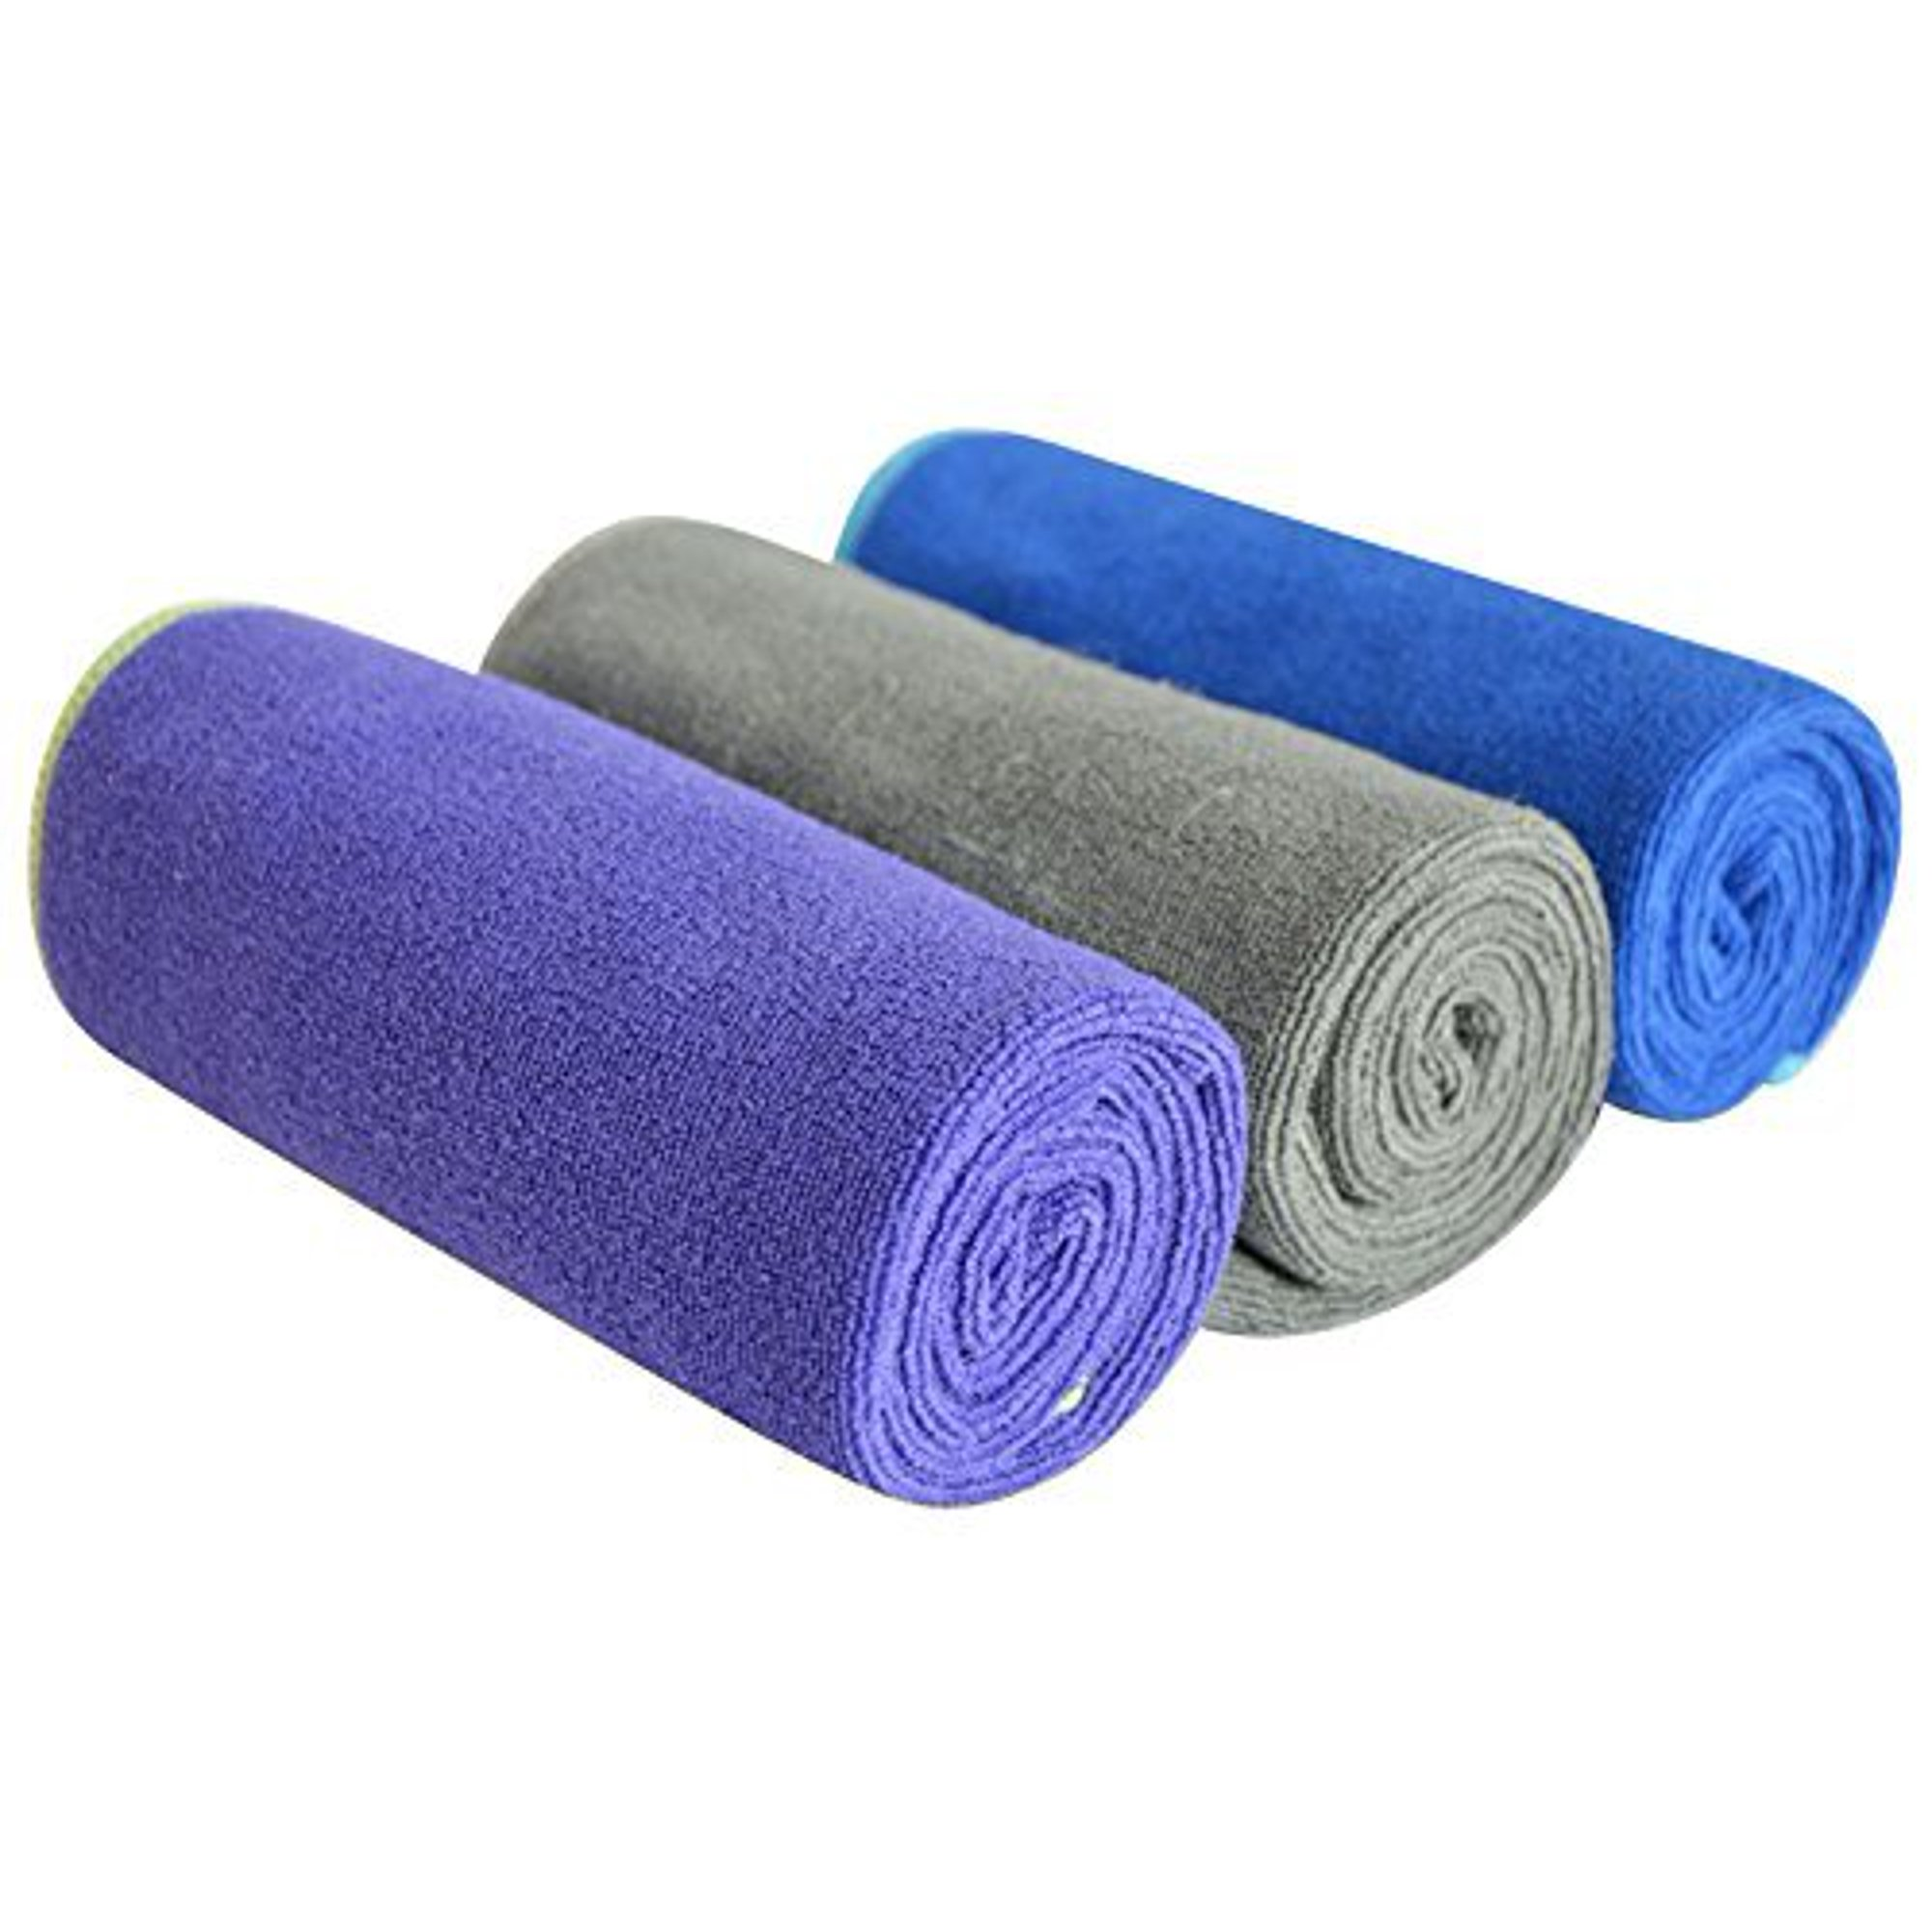 SINLAND Microfiber Gym Towels Sweat Workout Sports Fitness Towel Fast Drying 3 Pack 16 Inch X 32 Inch | Walmart Canada